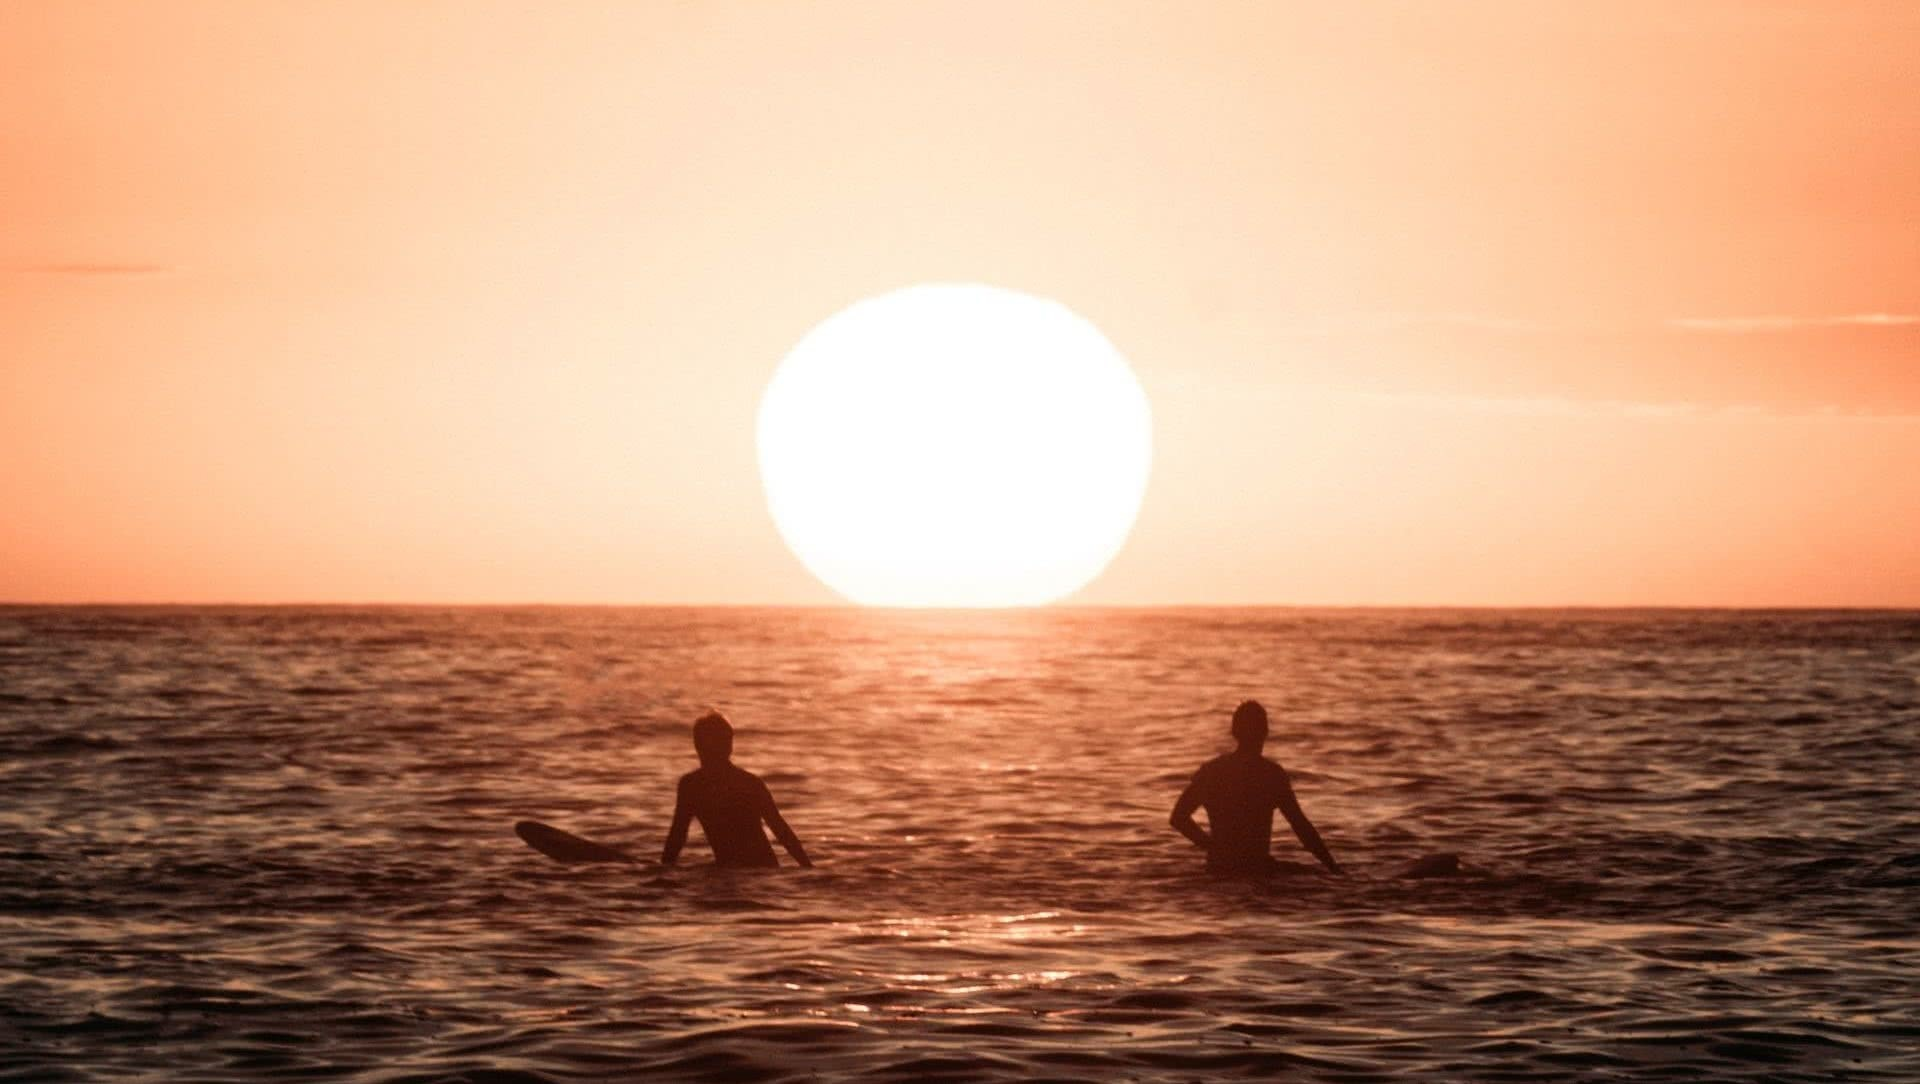 There's a Story Behind Every Photo: Adventure Photographer Fin Matson, photo by Fin Matson, Jono Tan, sunrise, beach, surfers, sun, ocean,